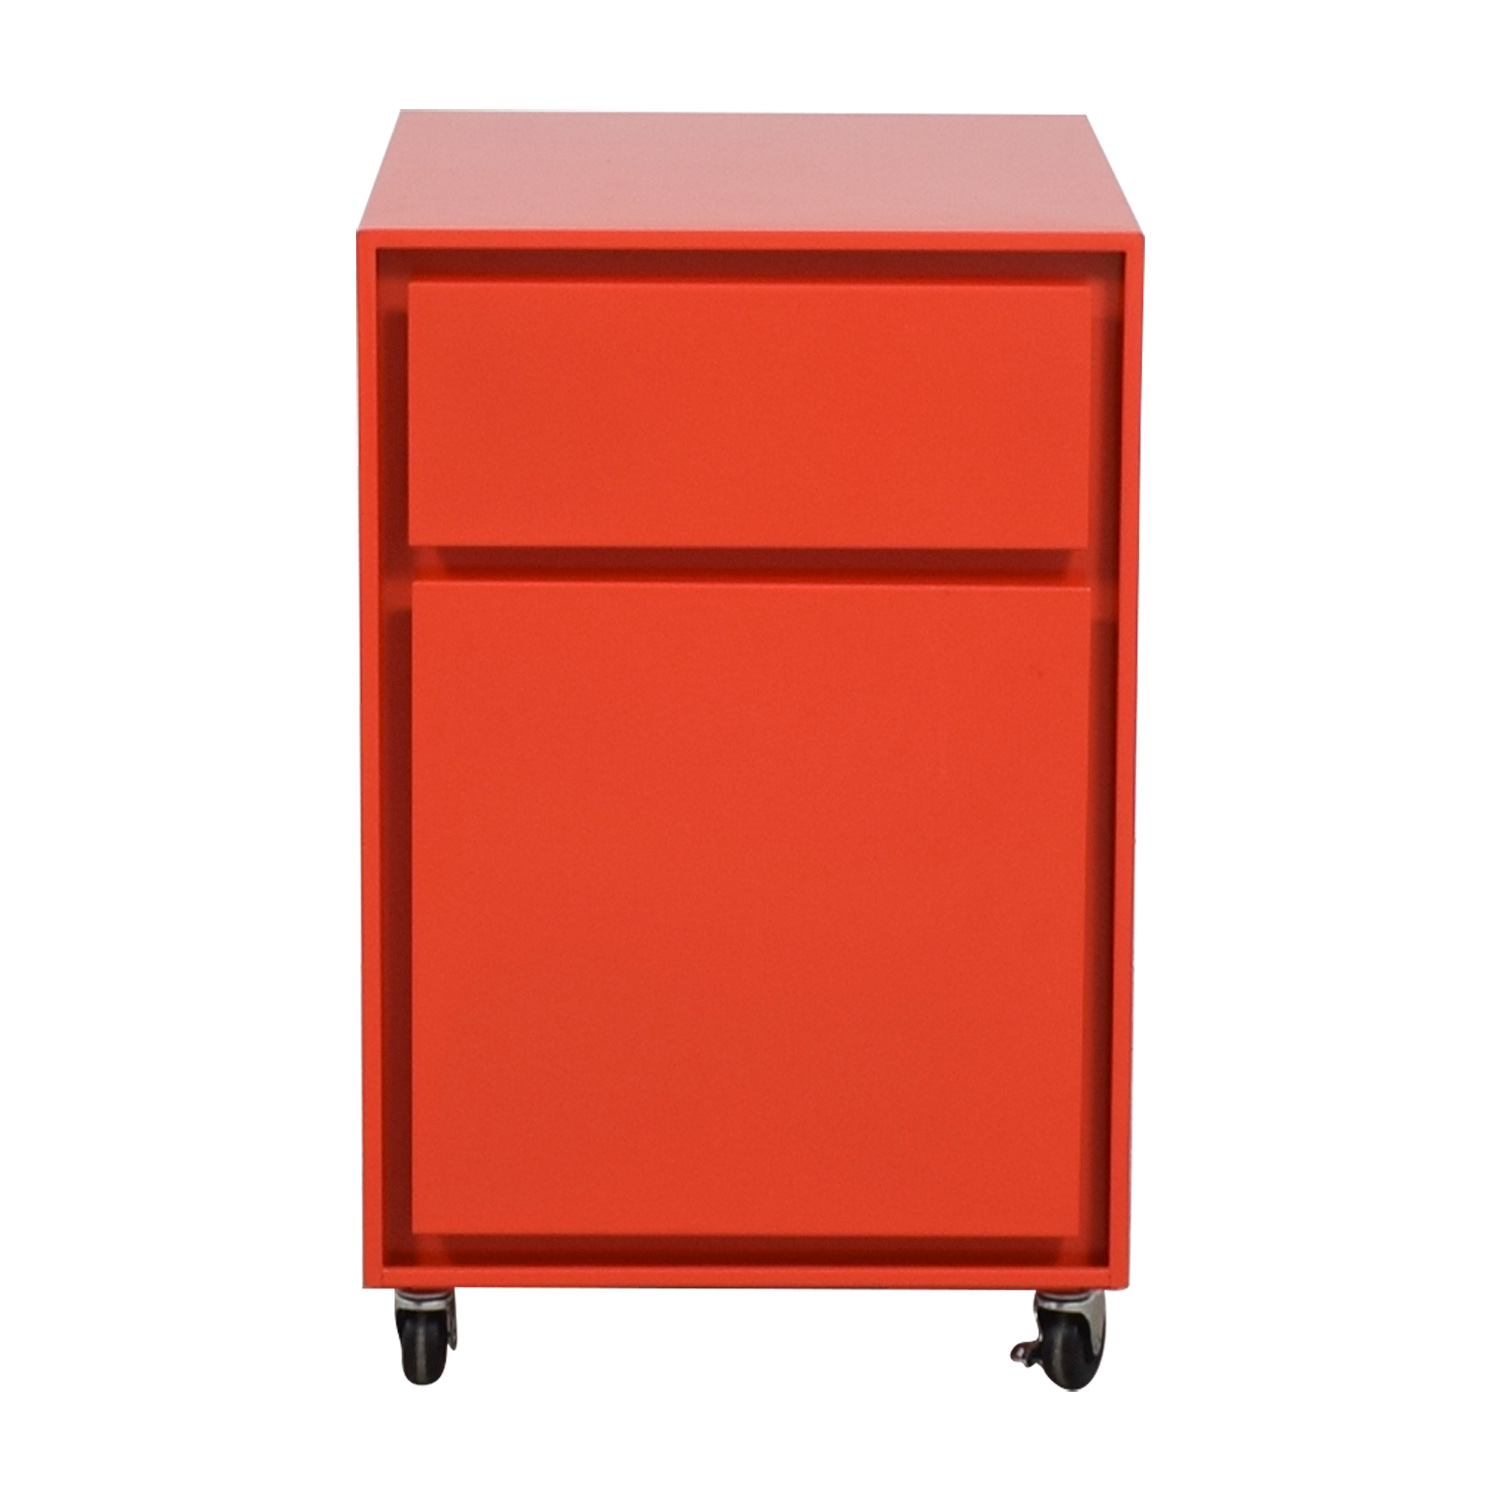 shop Crate & Barrel Paprika Pilsen File Cabinet Crate & Barrel Storage